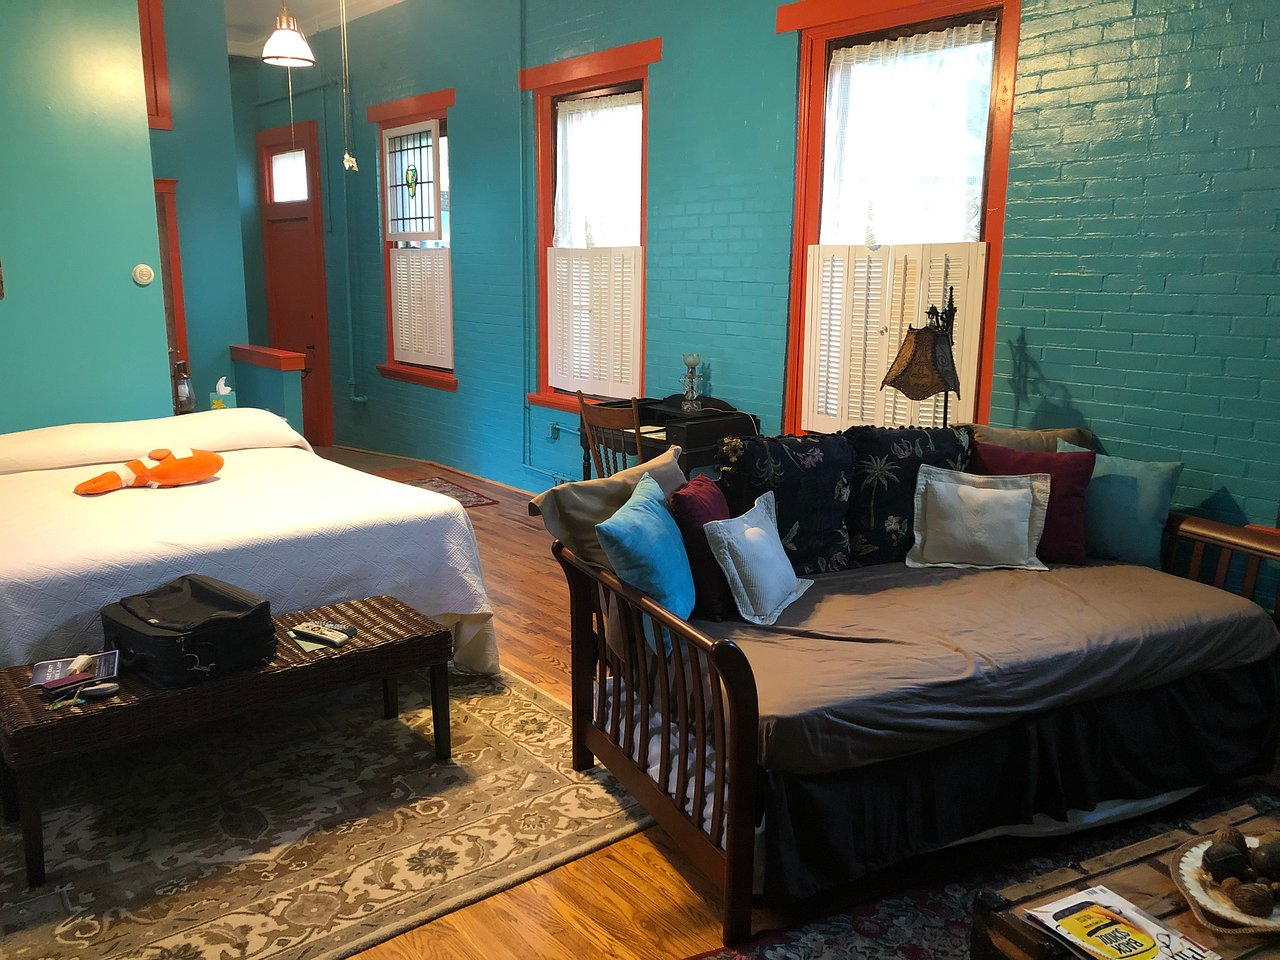 The 10 Best Pittsburgh Bed And Breakfasts Of 2021 With Prices Tripadvisor